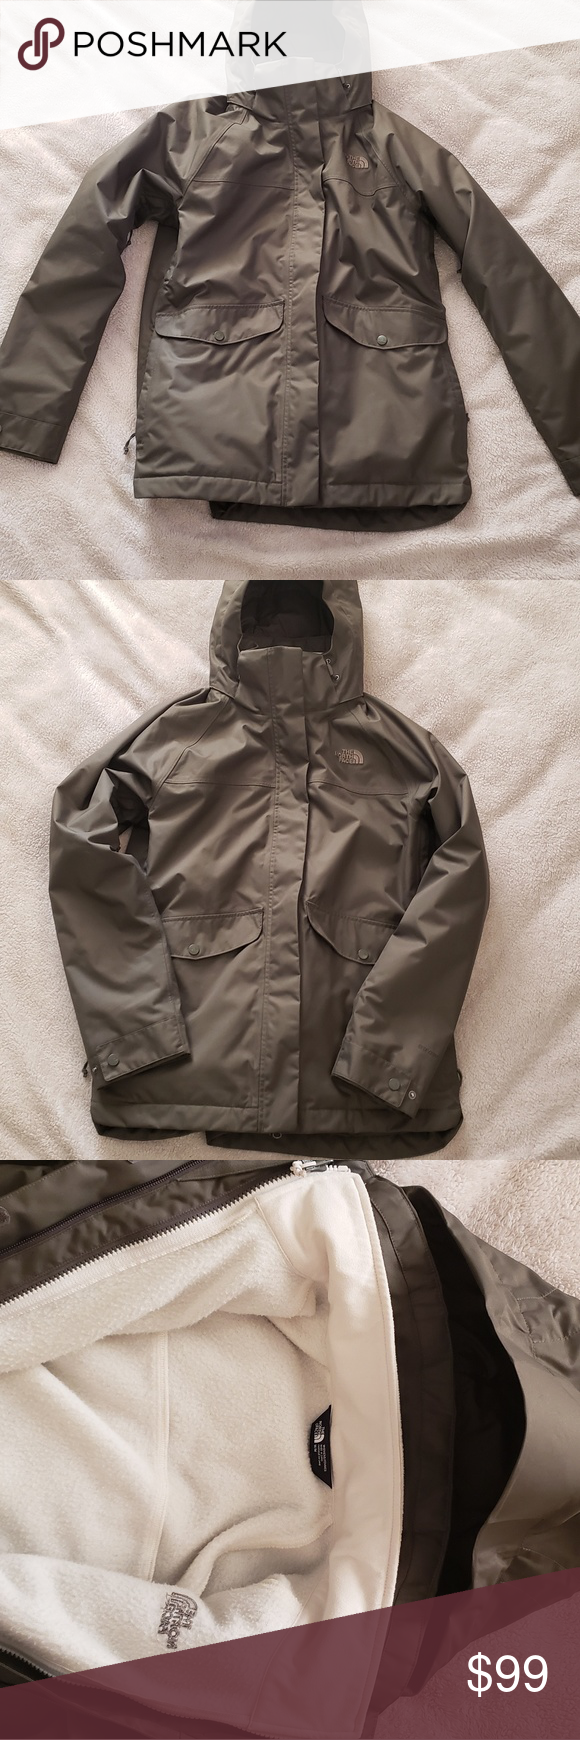 North Face Jacket Womens Wore A Couple Times Has Cream Liner Too Bulky For Me Olive Green Th North Face Jacket Womens Jackets For Women North Face Jacket [ 1740 x 580 Pixel ]